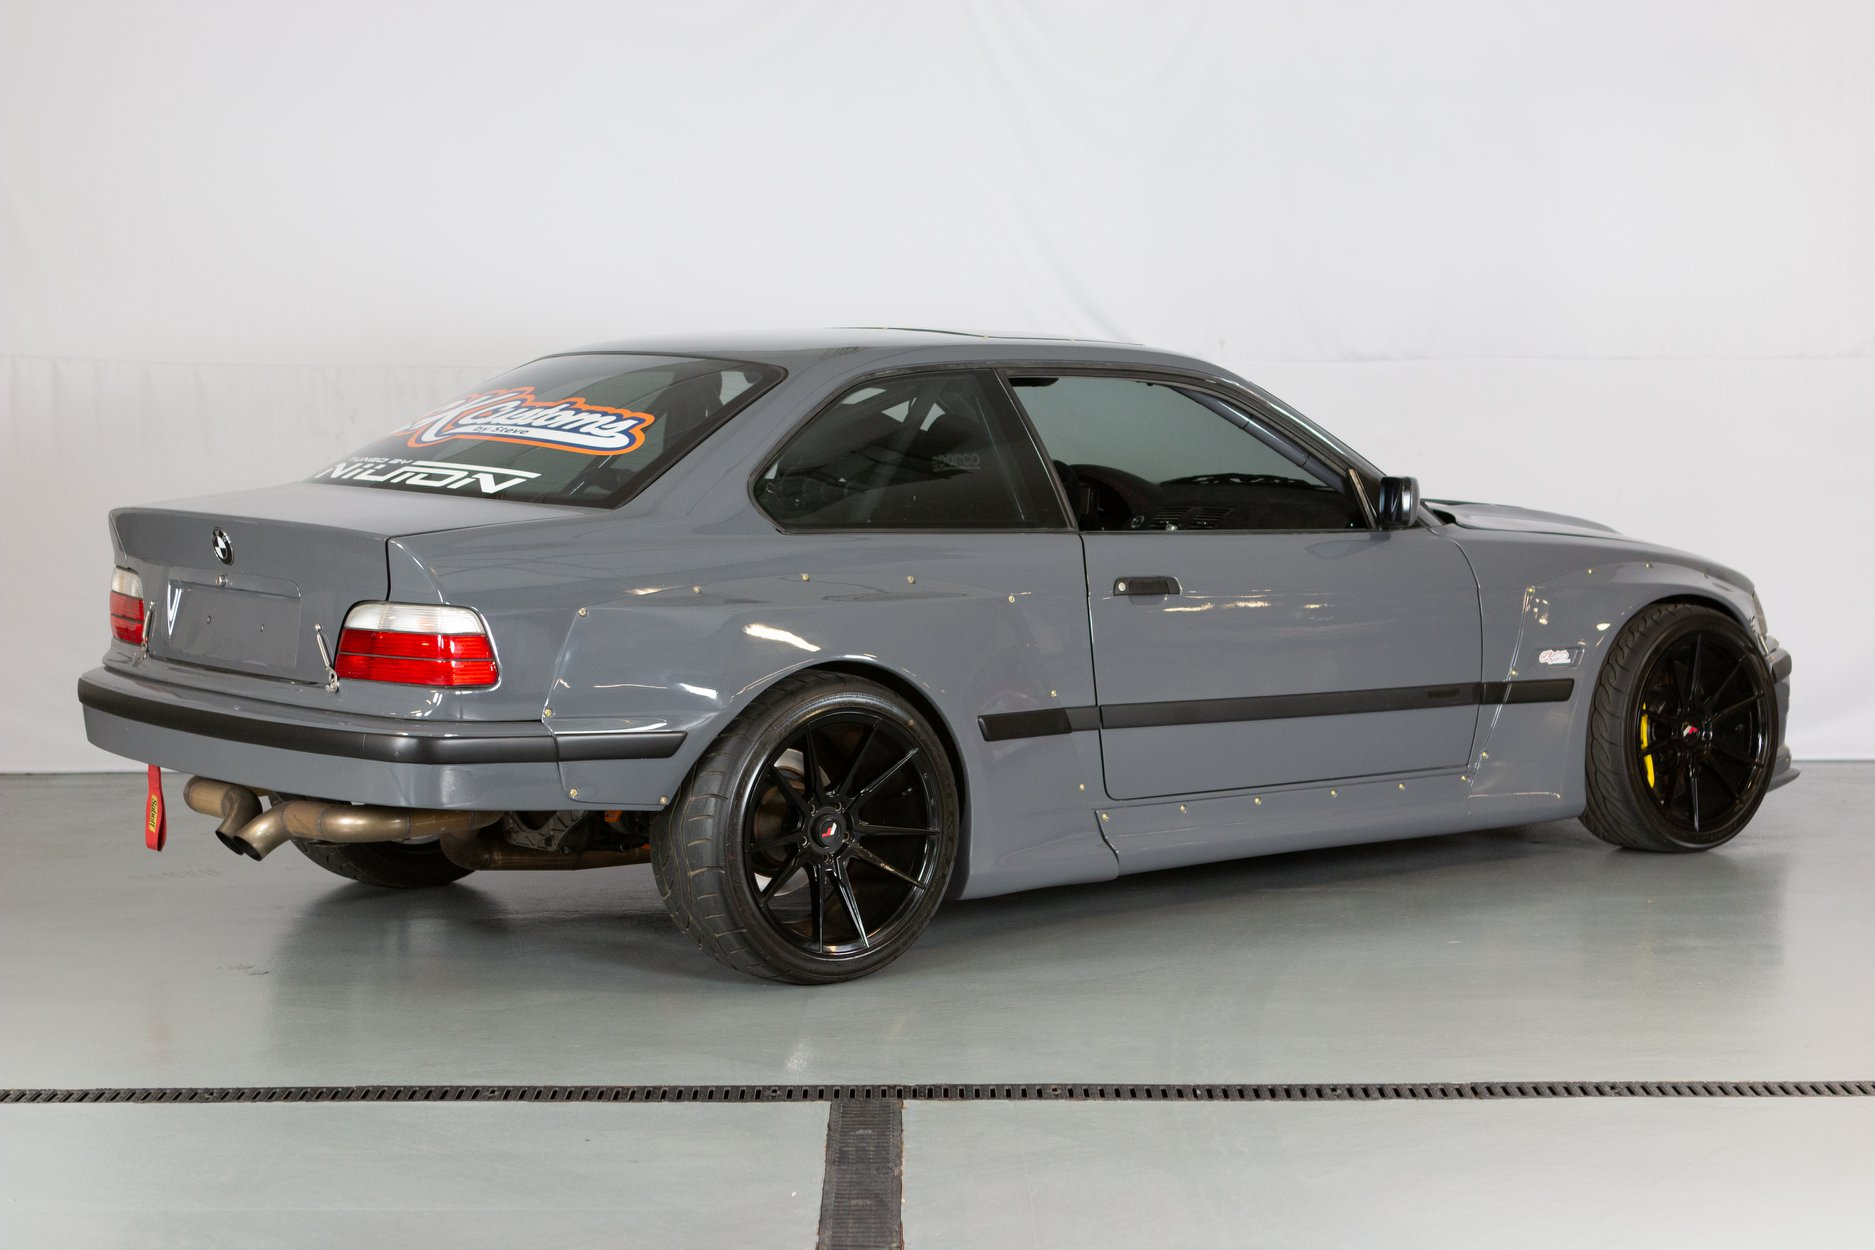 For Sale Bmw E36 With An Amg V8 Engine Swap Depot